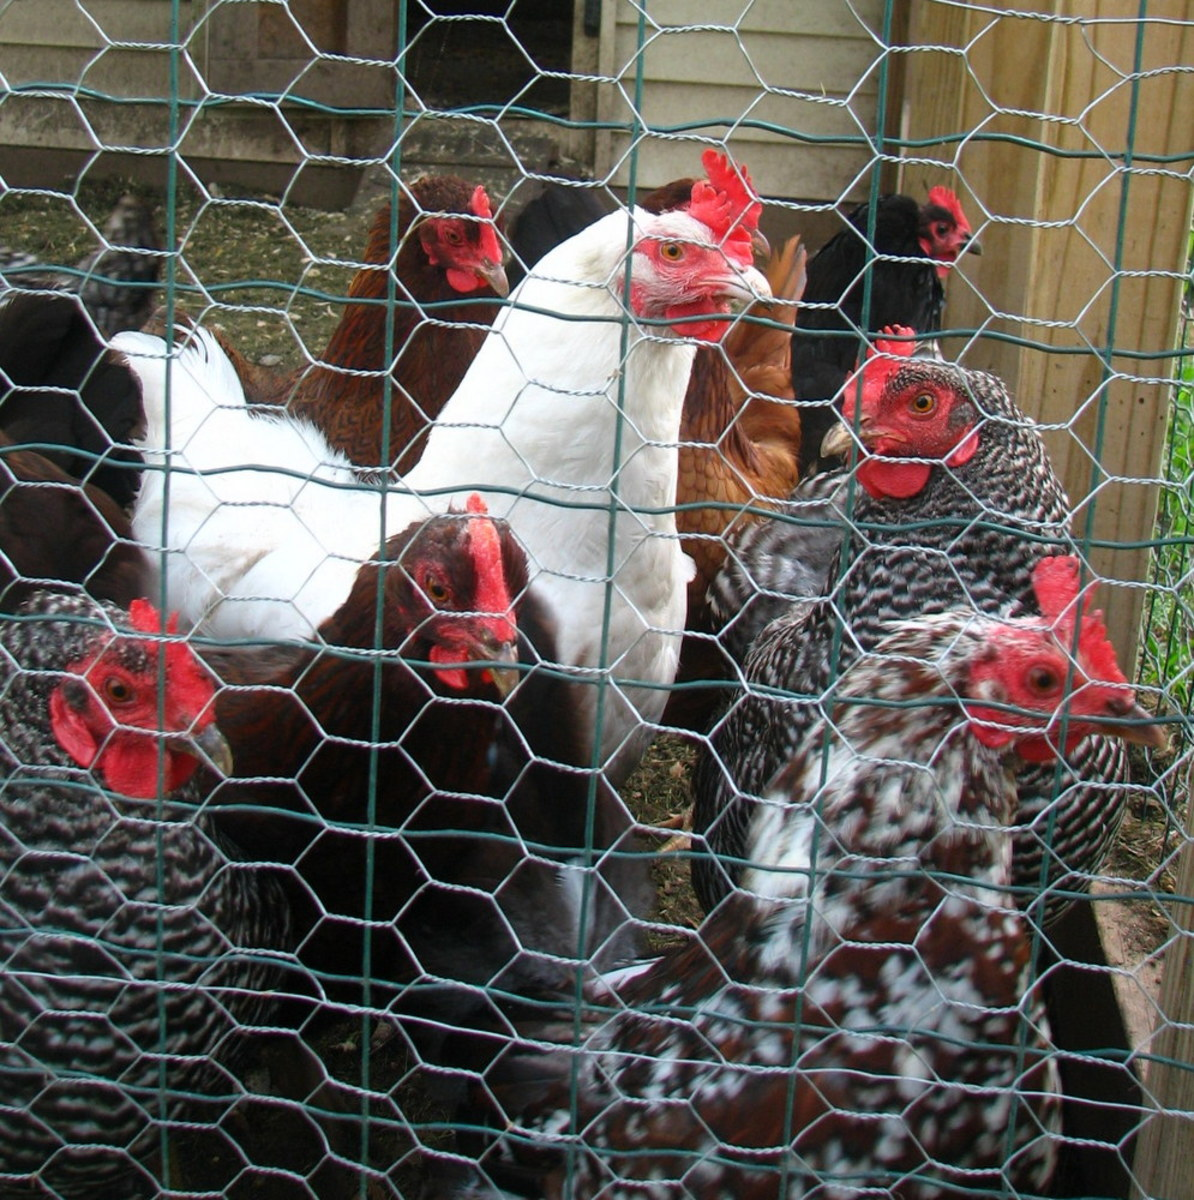 The hens are gathering. They are curious about the photographer.